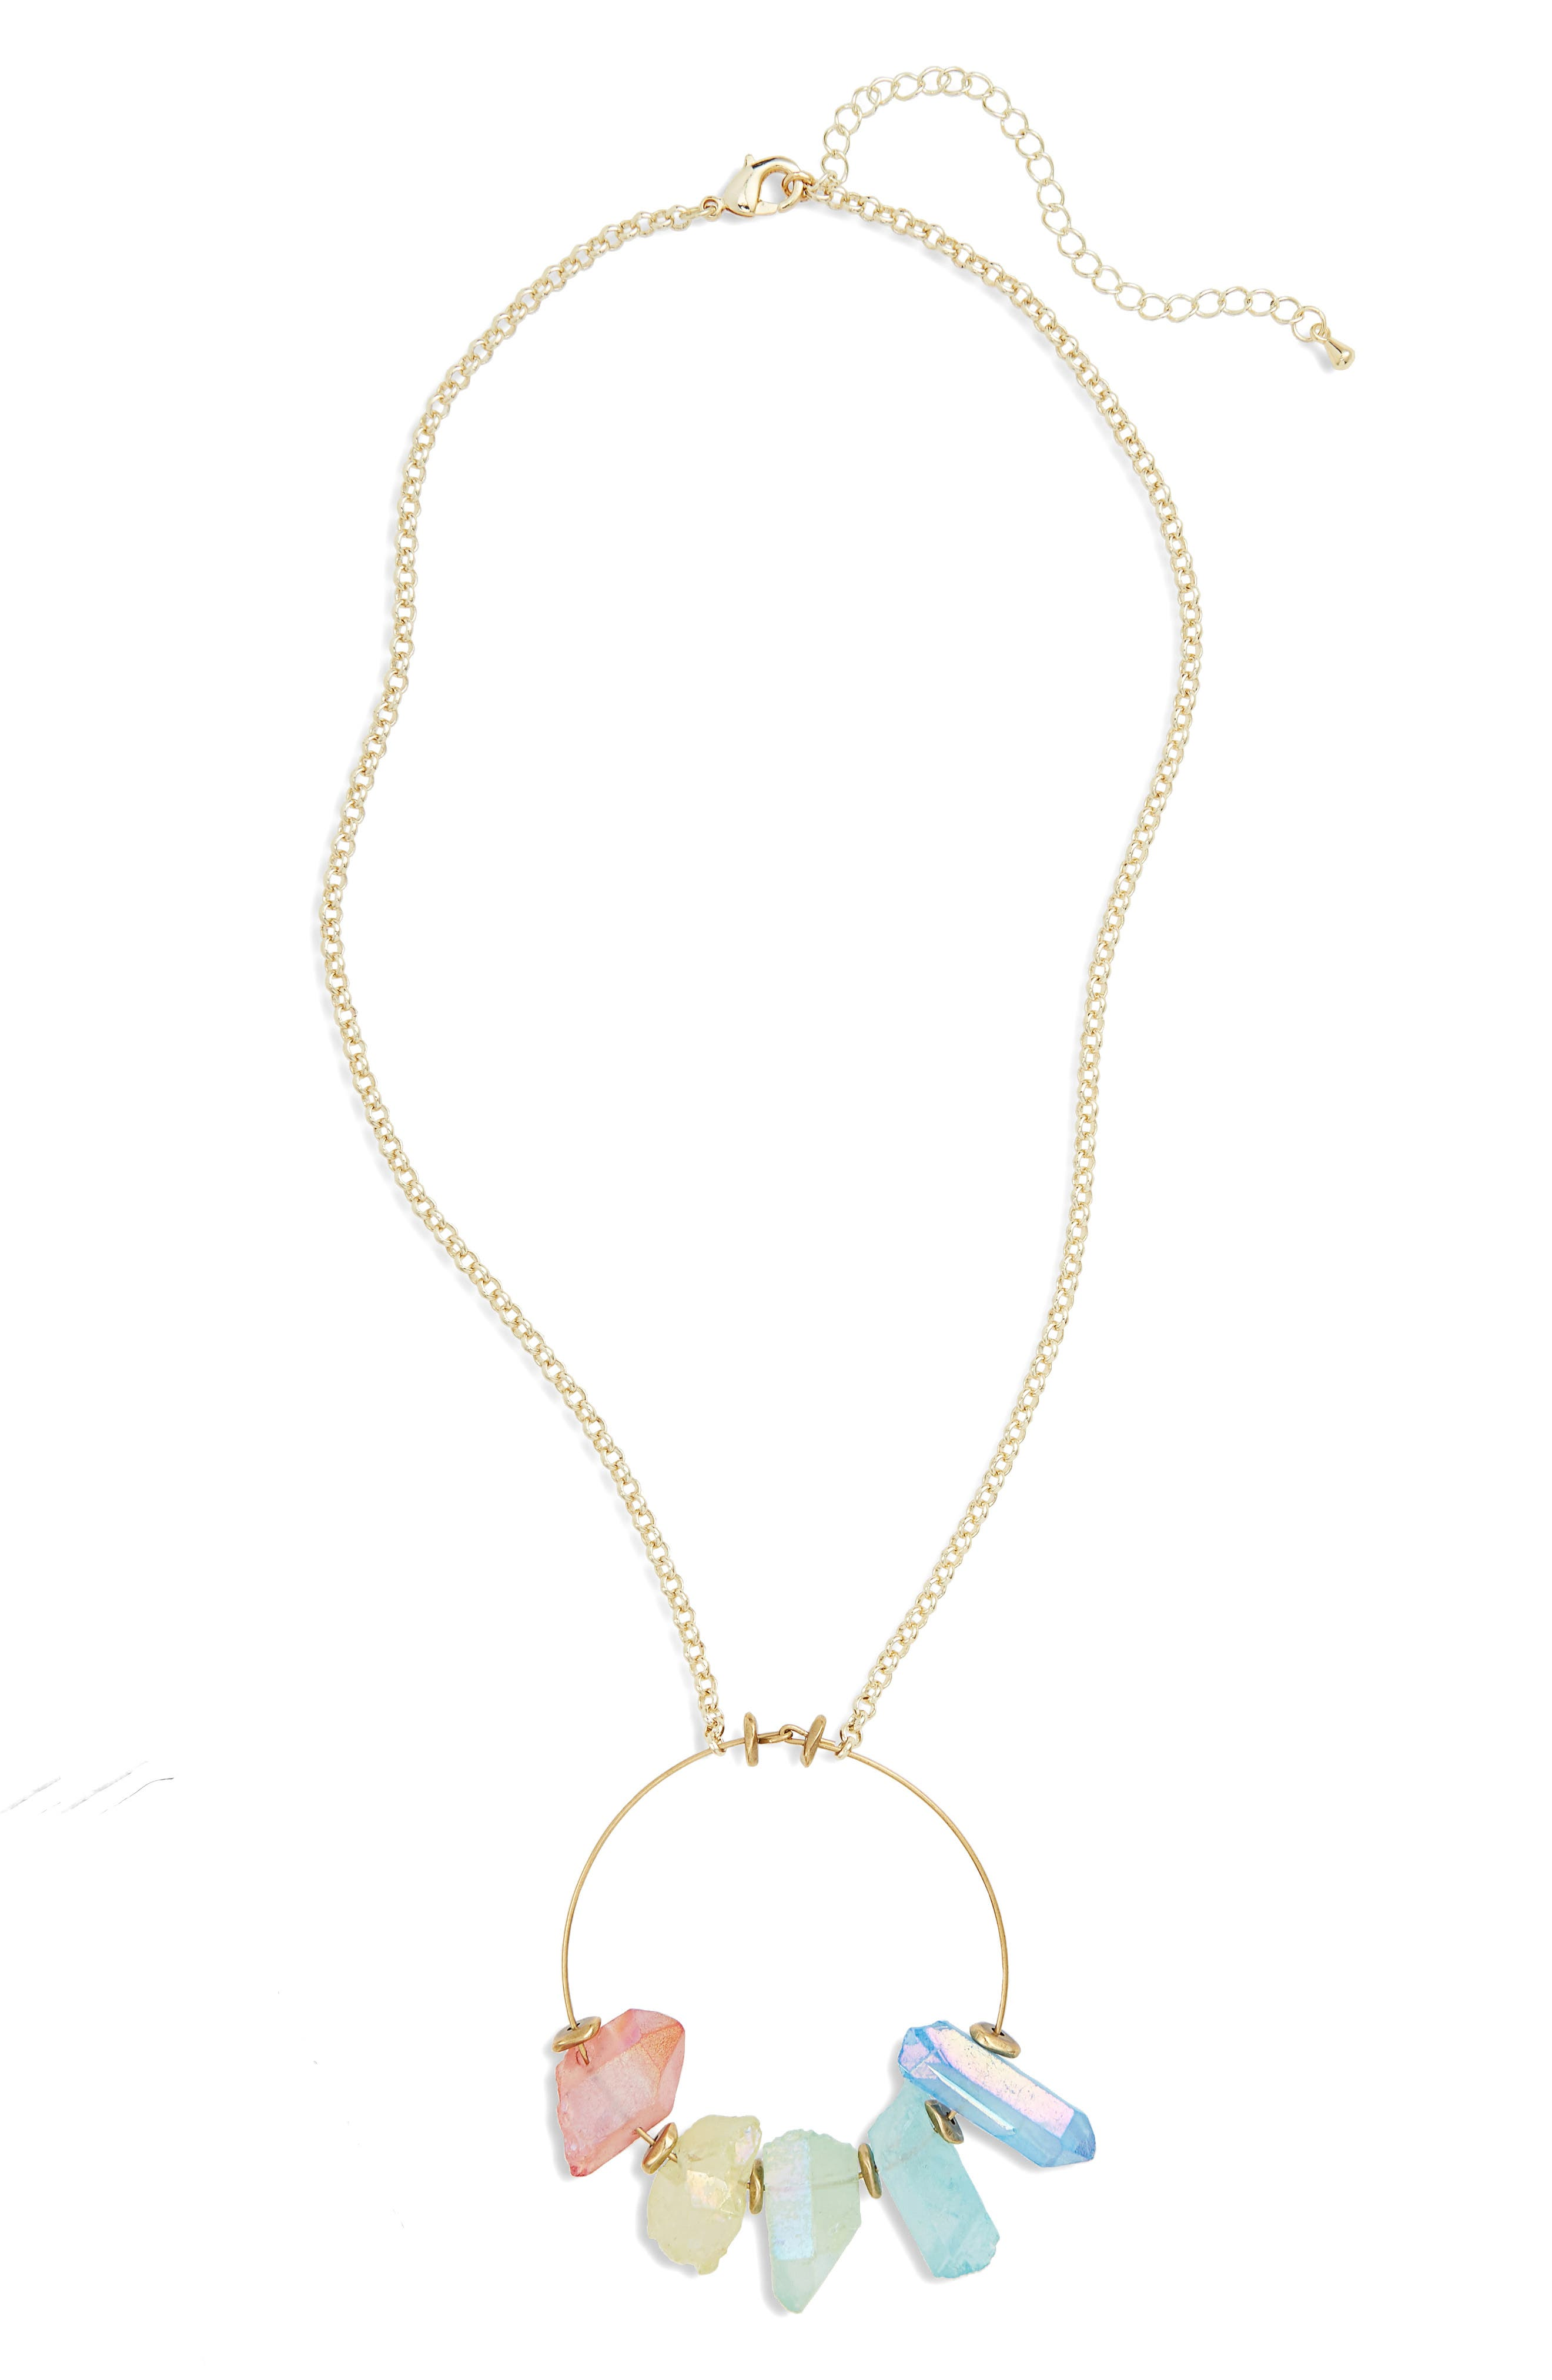 Crystal Hoop Pendant Necklace,                         Main,                         color, Gold/ Rainbow